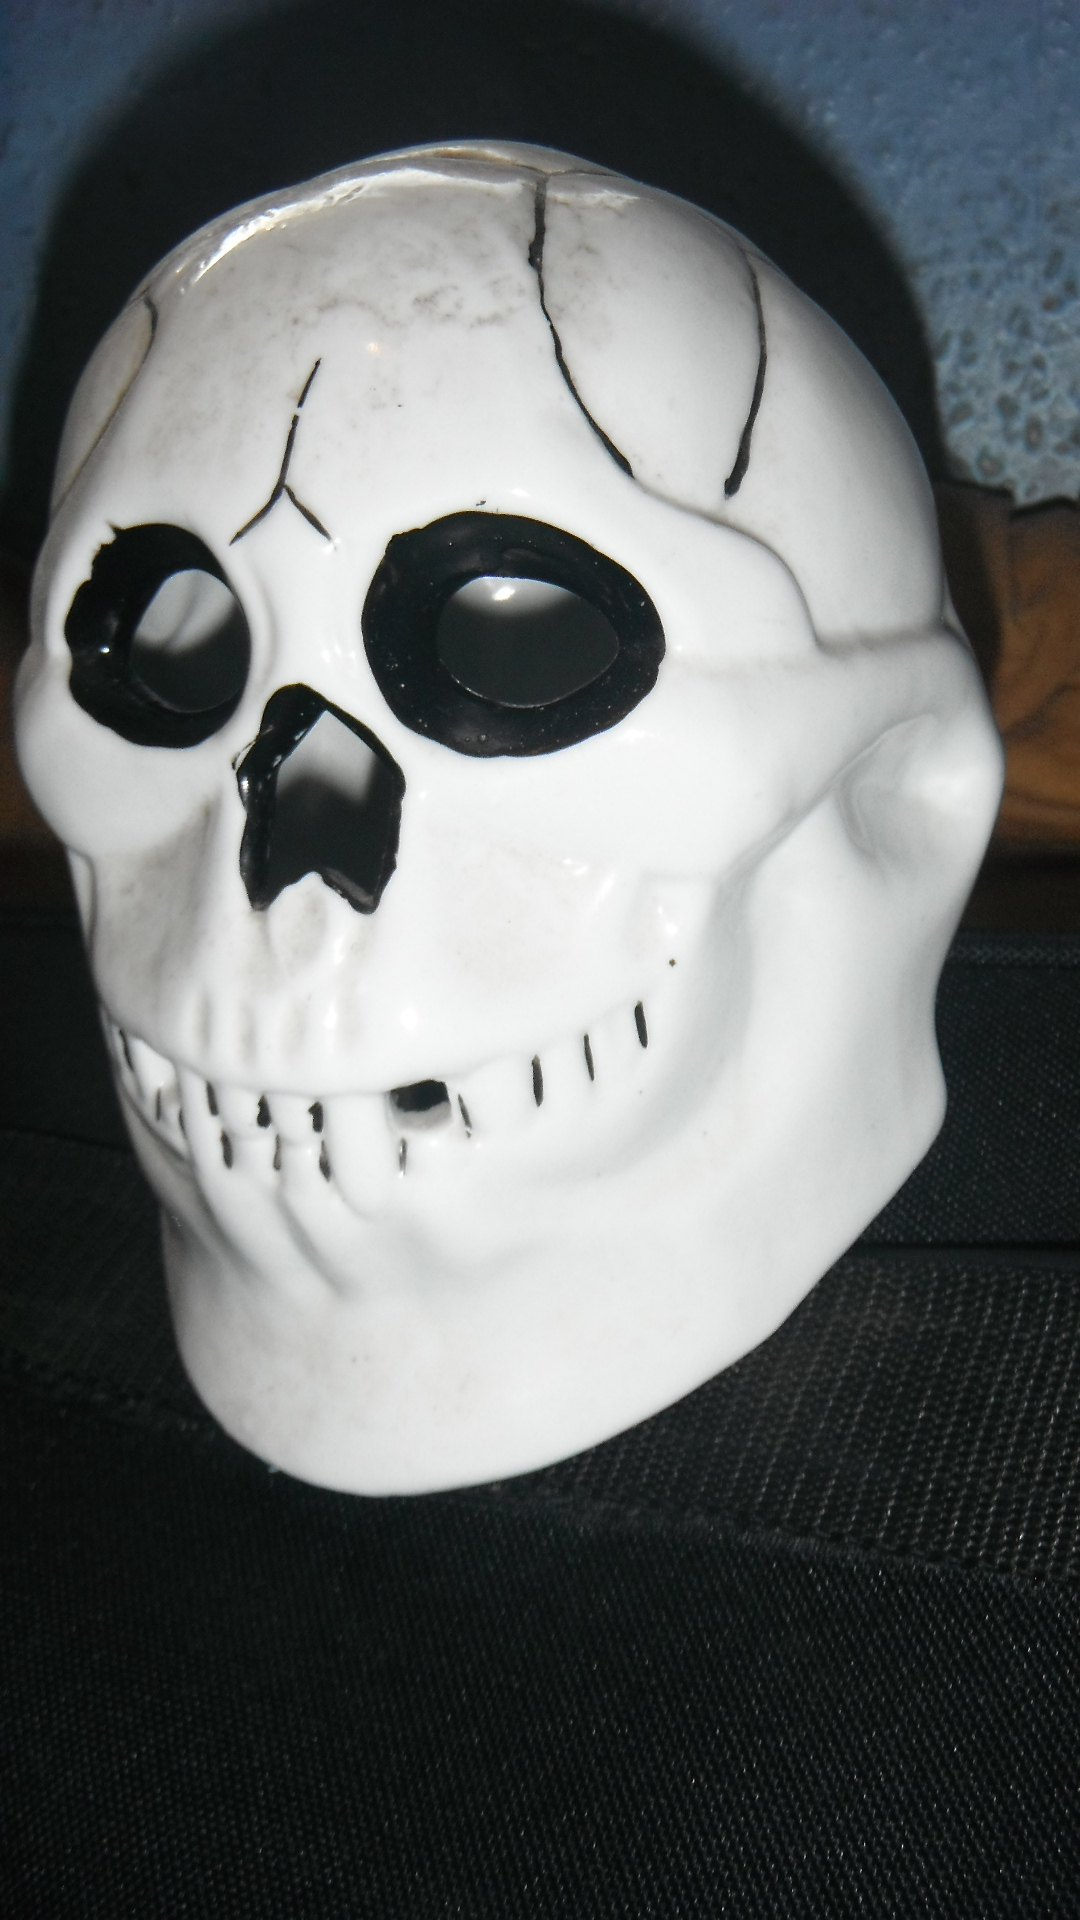 Photo taken by me – horror skull